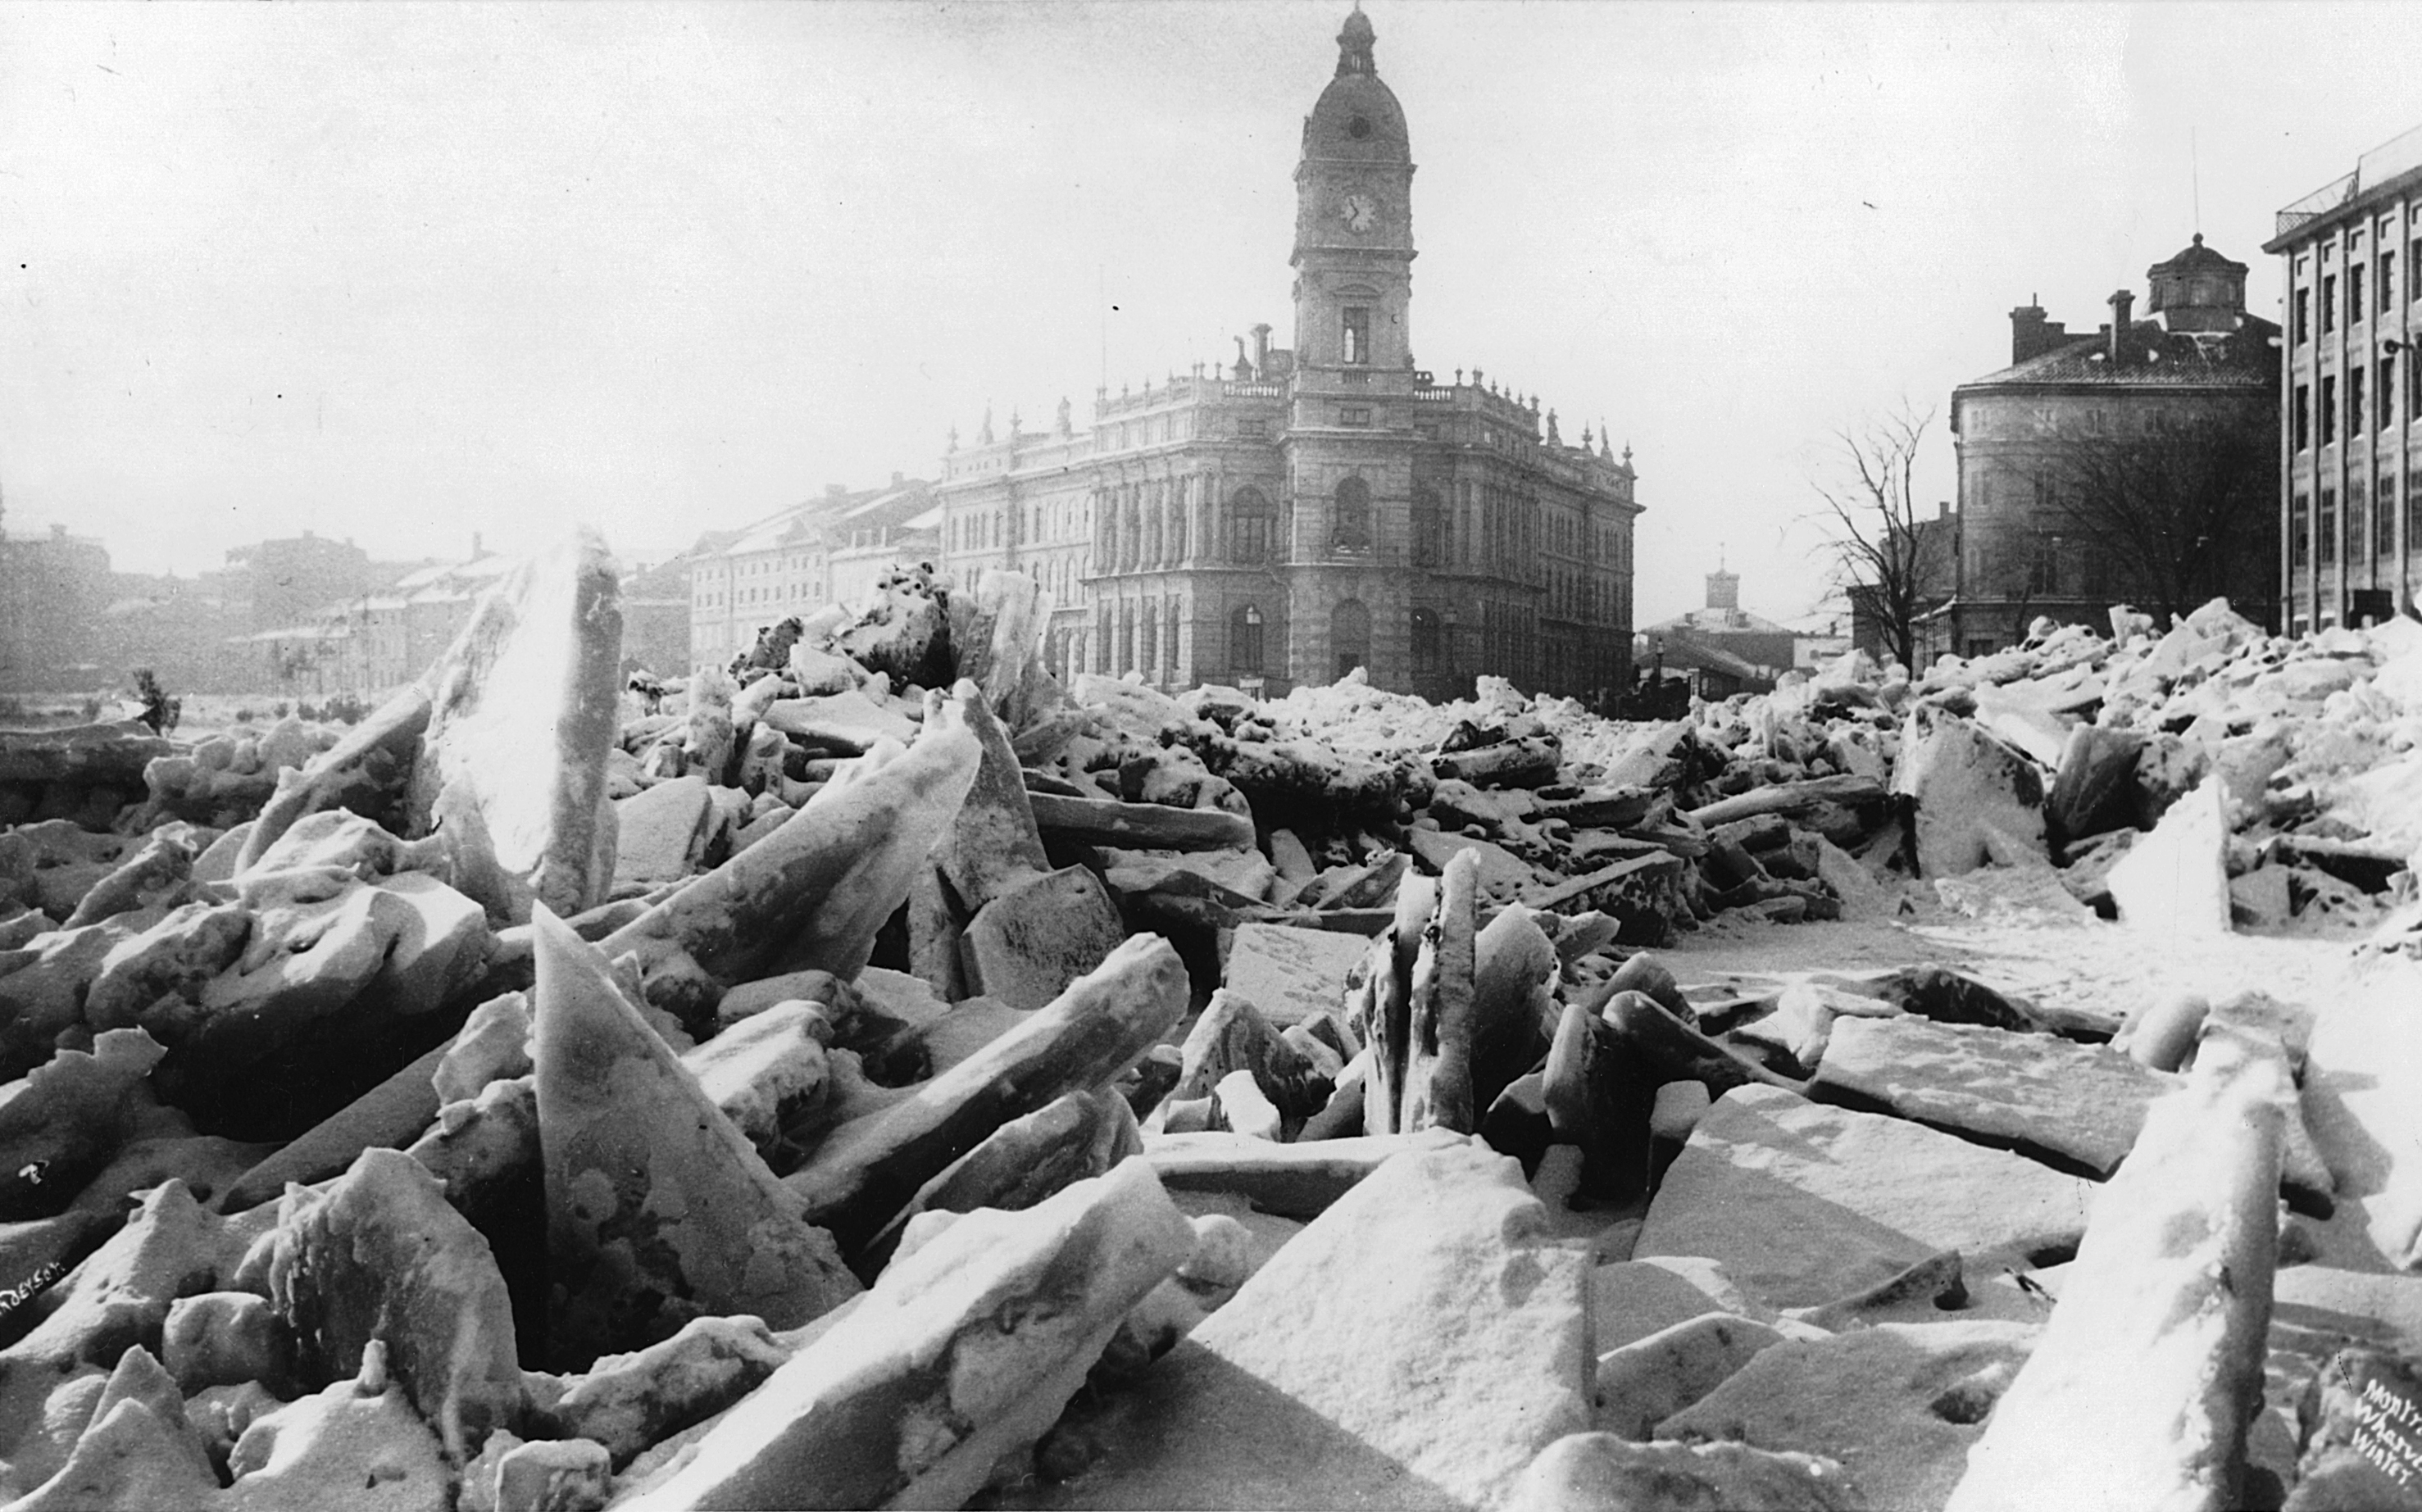 This black-and-white photograph shows a jumbled heap of ice slabs in the foreground. Buildings in Montréal's harbour appear in the background.